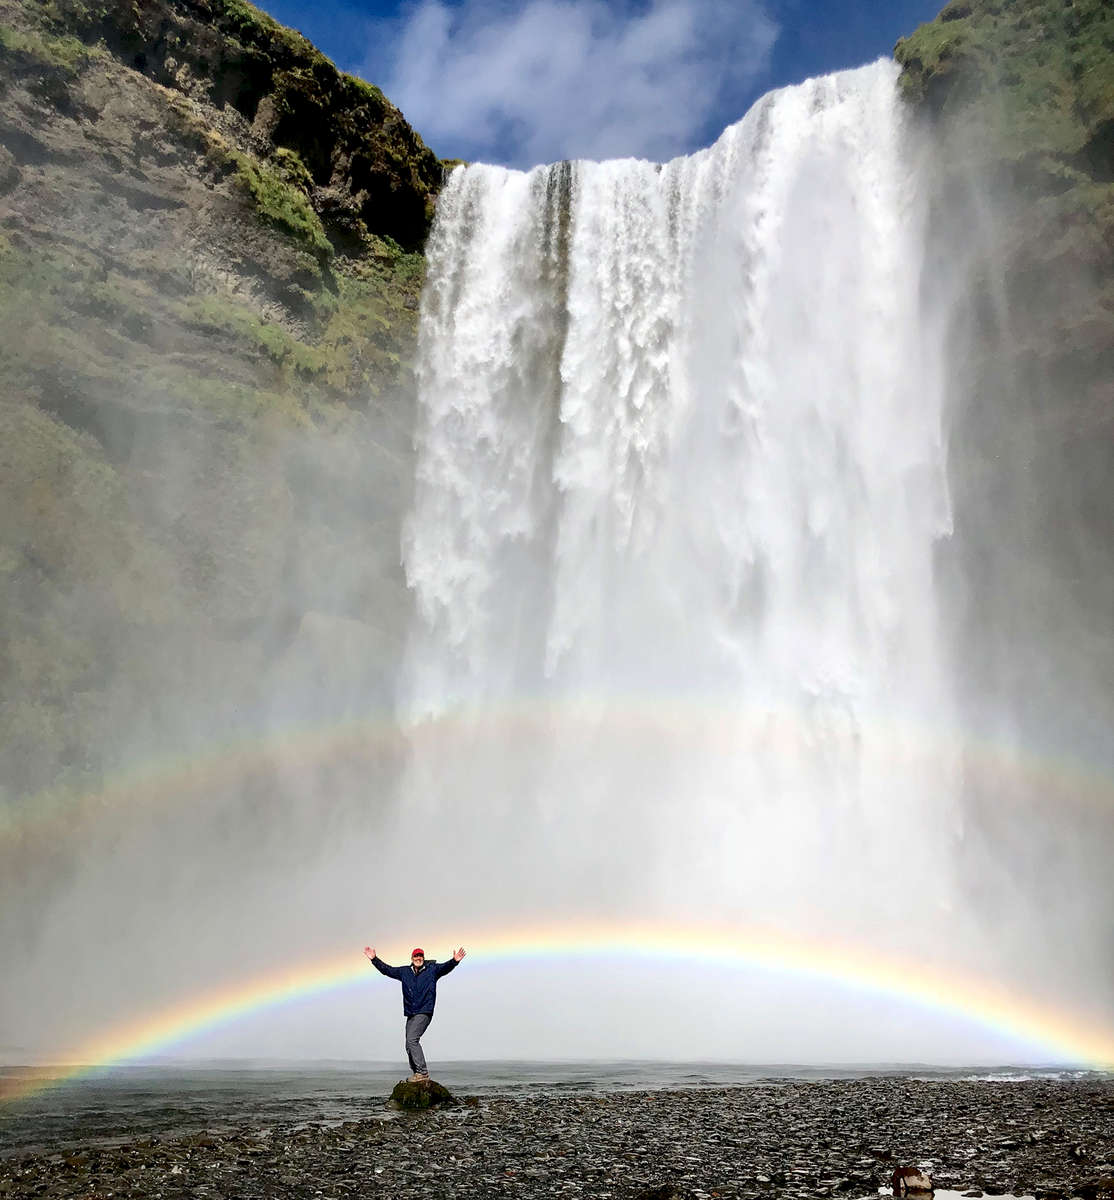 This is the waterfall at Skogar in Iceland. I walked out into the river on a rock and had a friend shoot the image. A rainbow appeared at the right time!